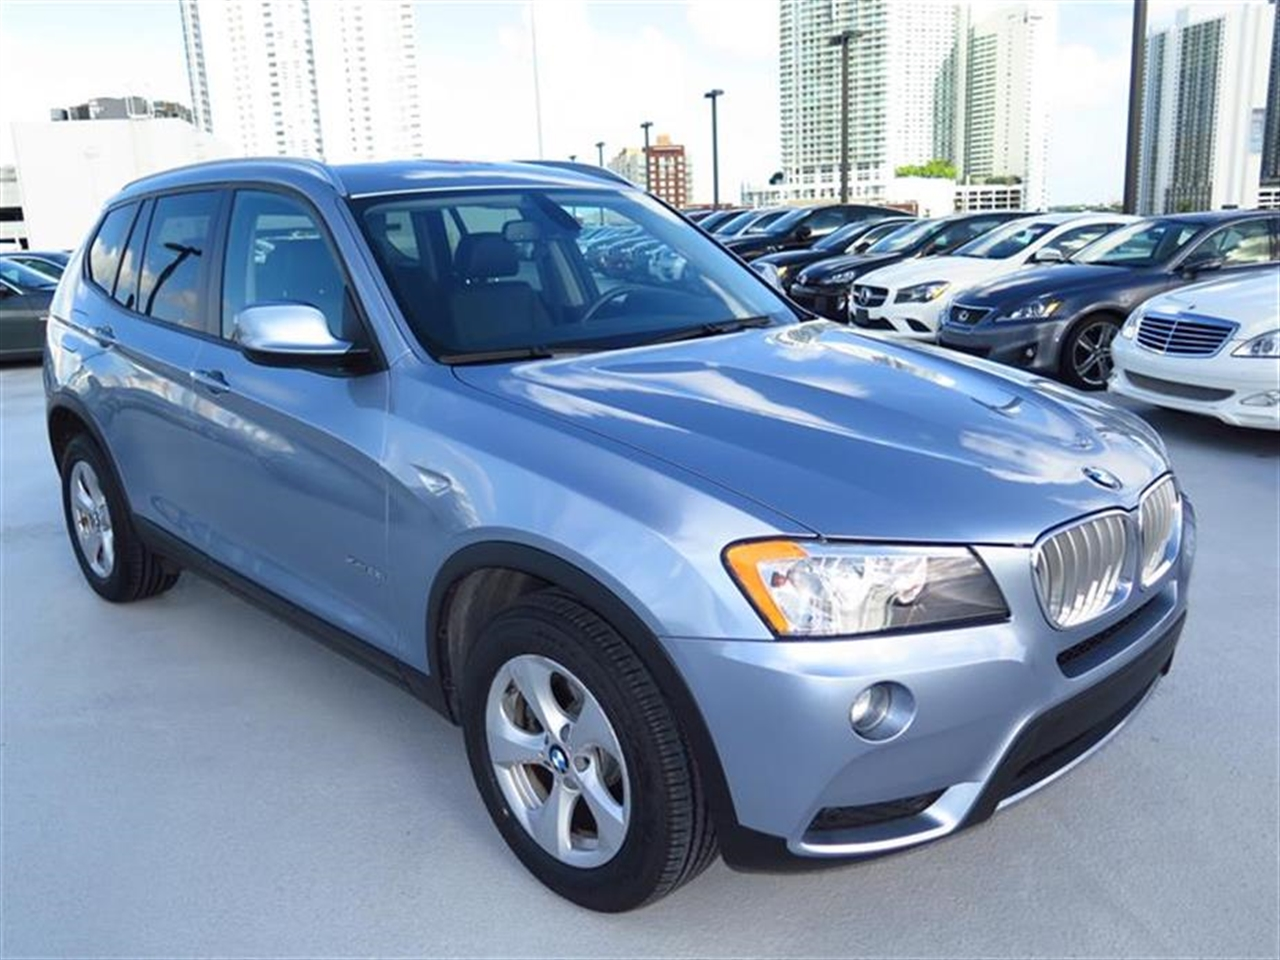 2011 BMW X3 AWD 4dr 28i 30746 miles 3-spoke leather-wrapped multi-function sport steering wheel wi